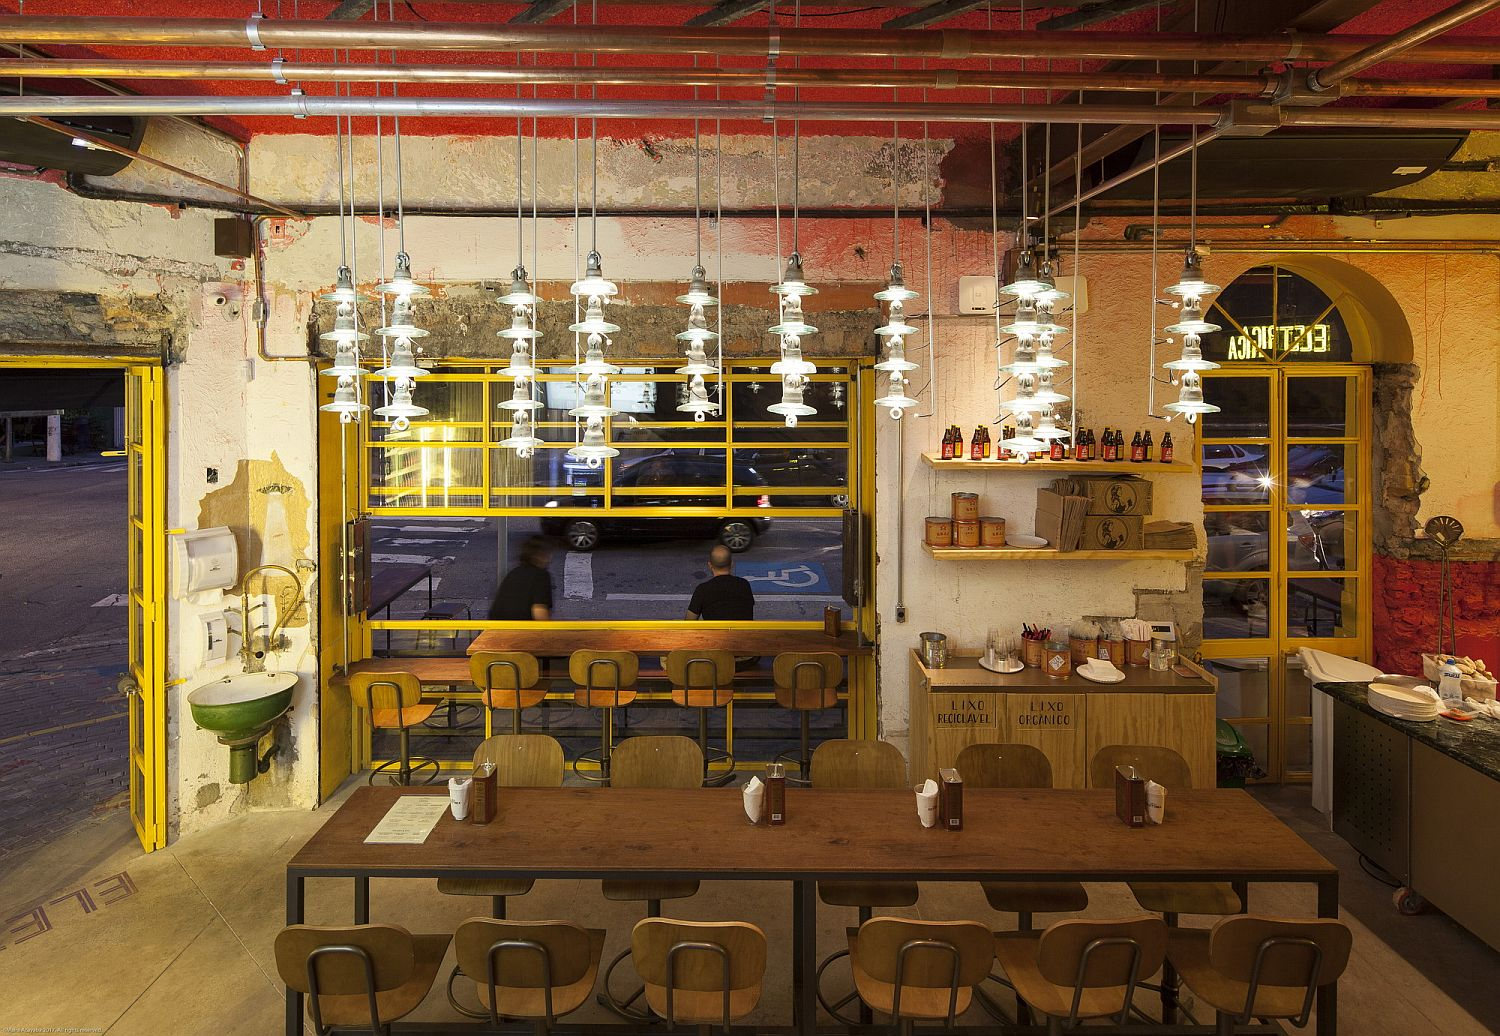 Vivacious and light-filled interior of Bráz Elettrica Pizza Restaurant